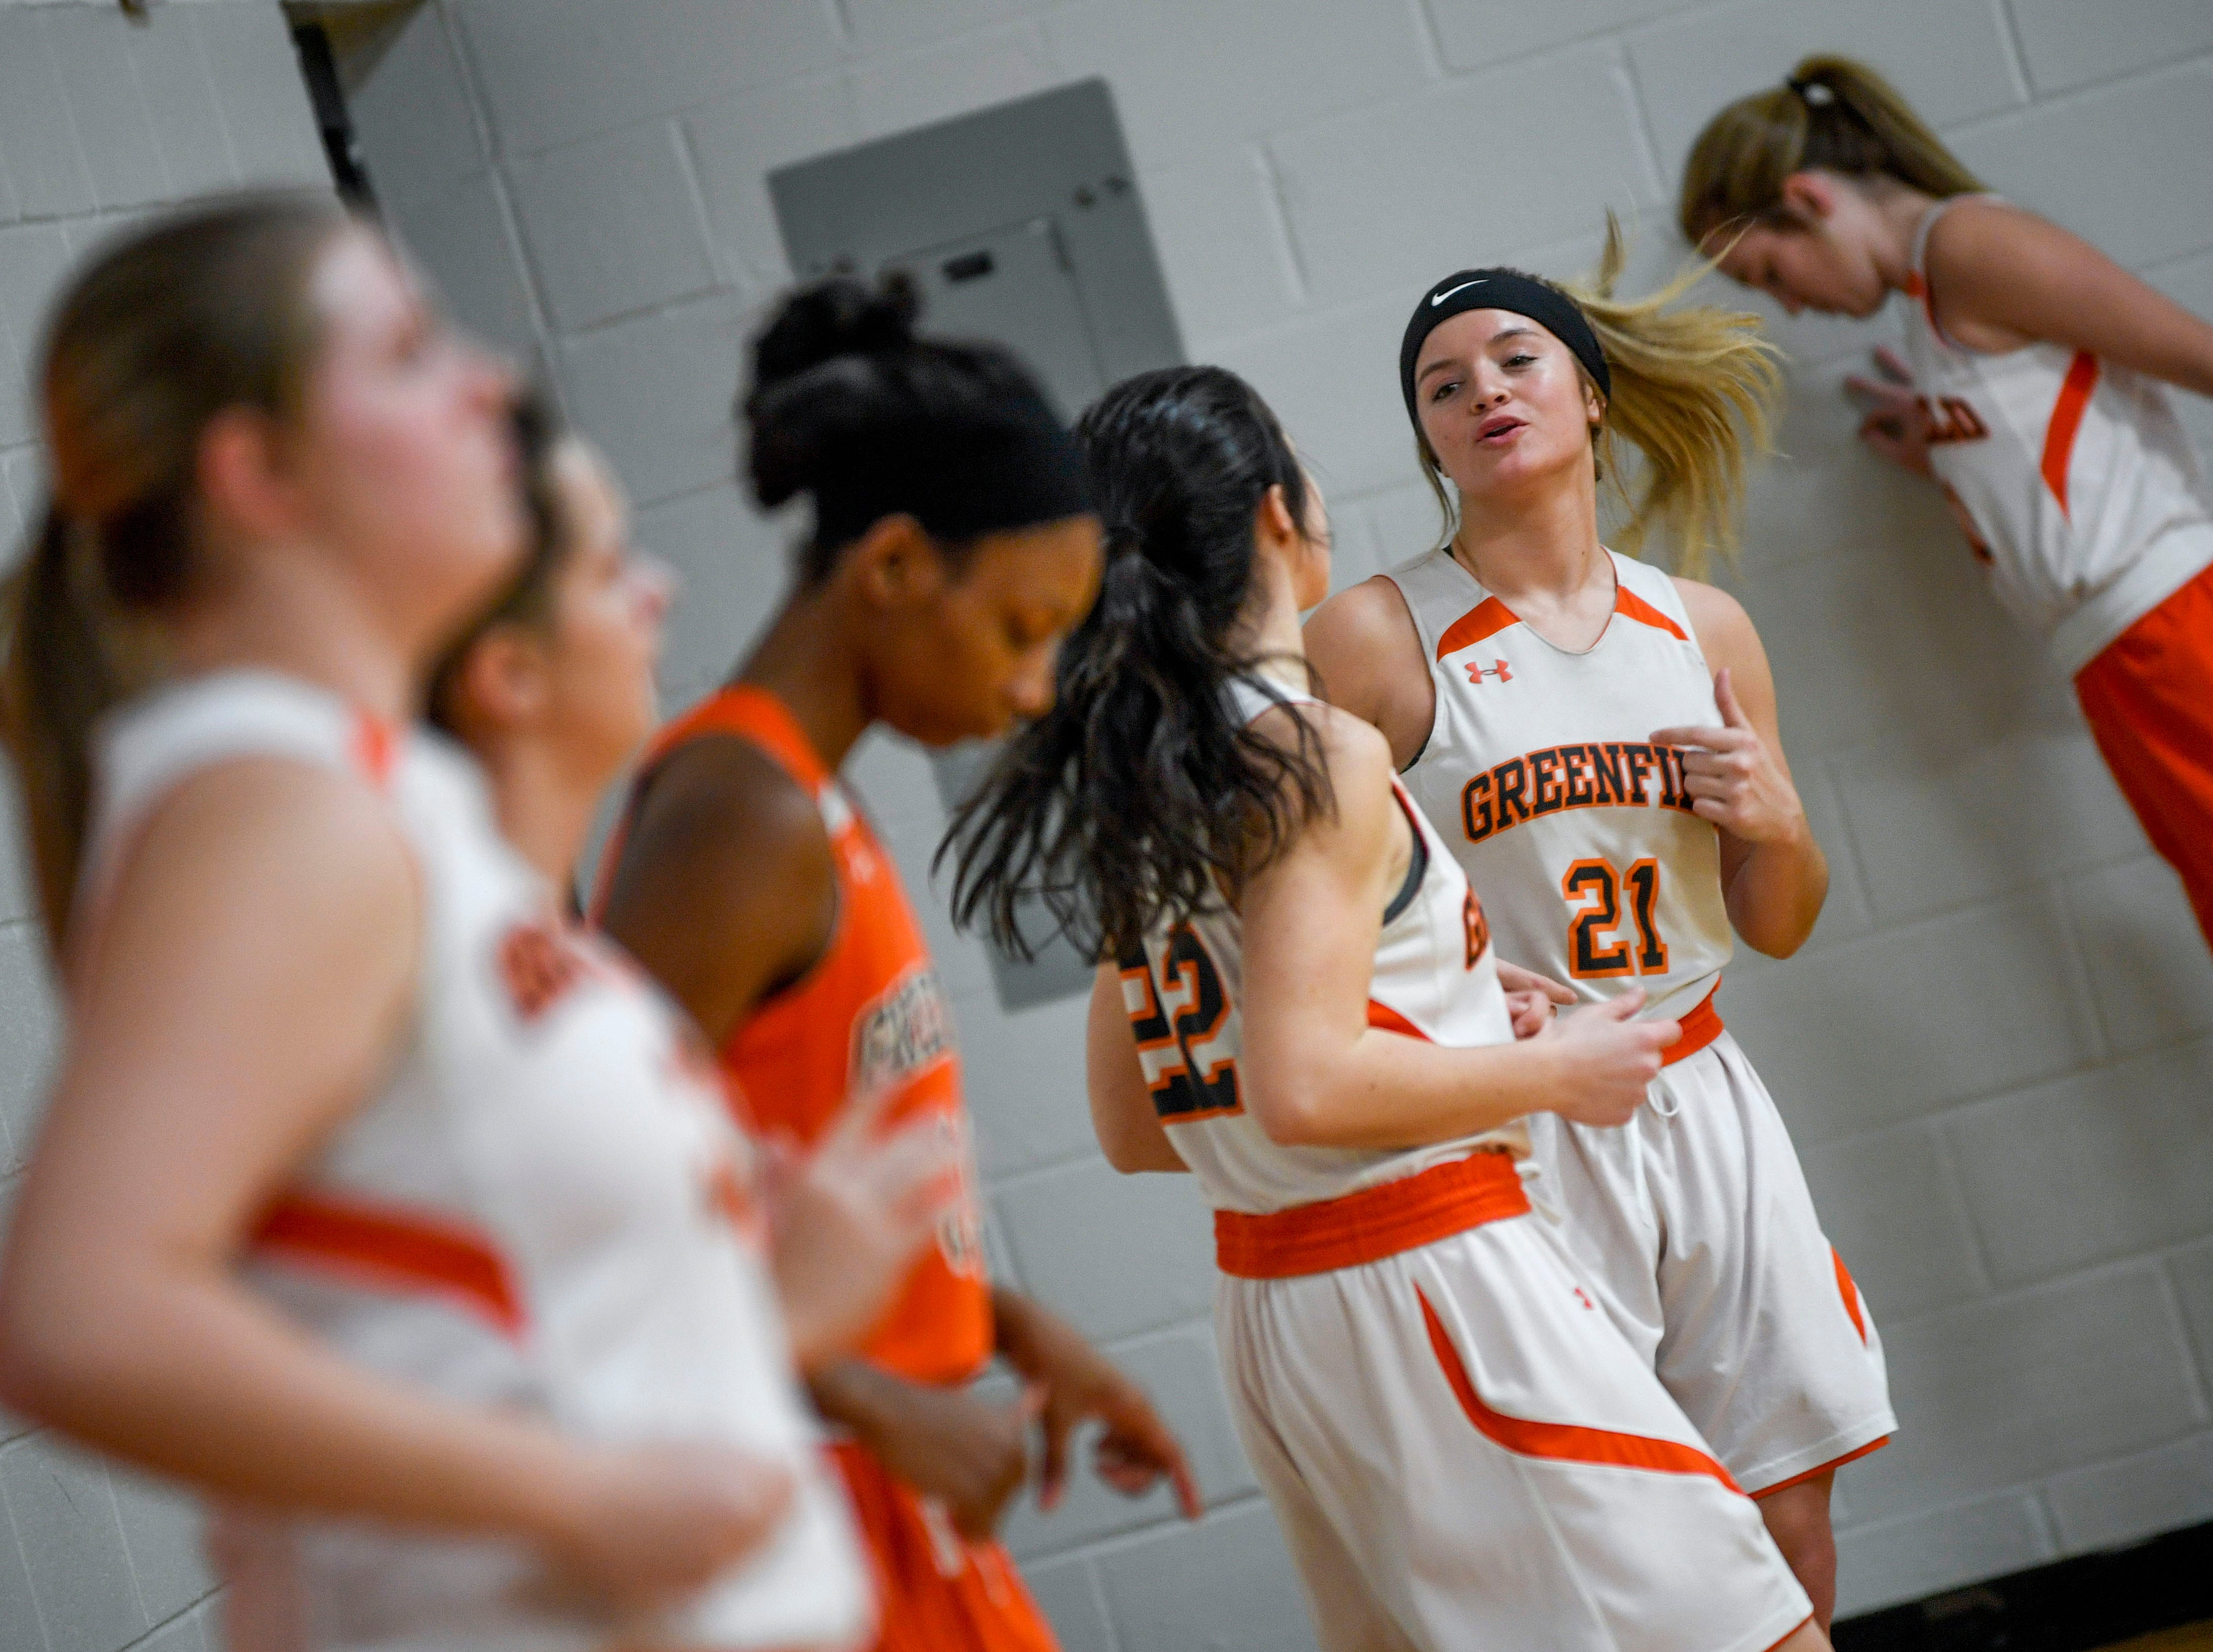 Caroline Crouse (21) talks with teammates during an afternoon practice at Greenfield School in Greenfield, Tenn., on Thursday, Jan. 24, 2019.